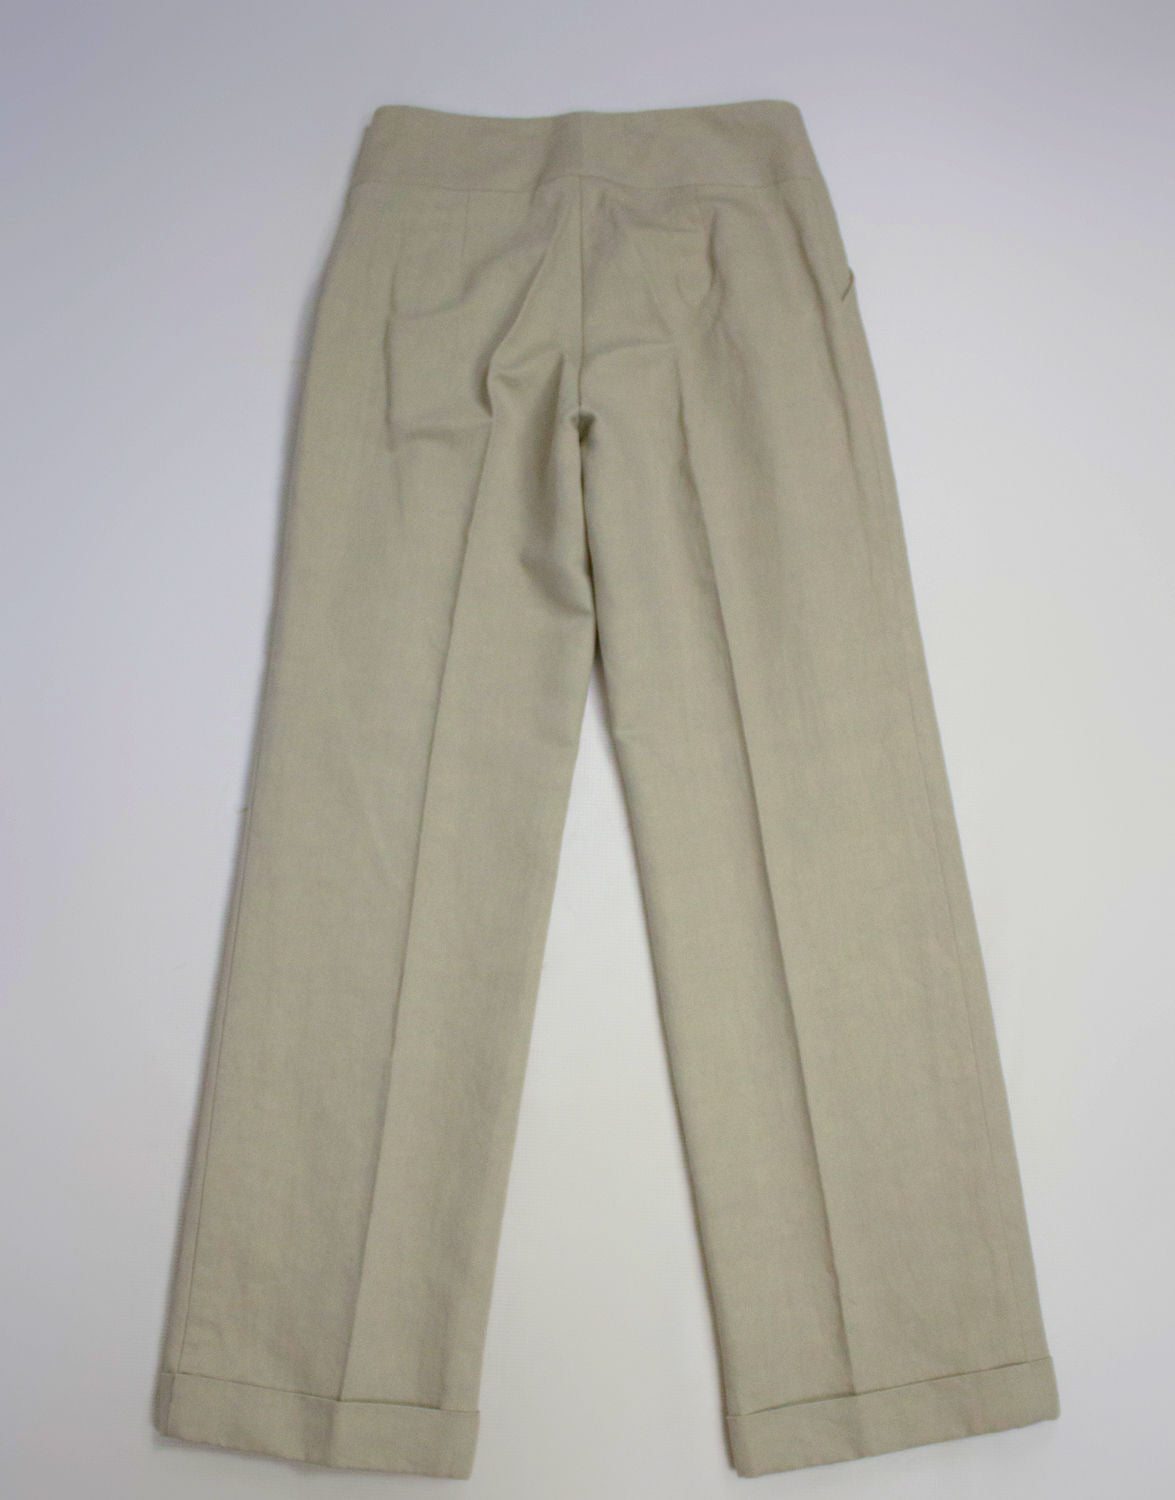 NYGARDSANNA Wide Pleated Gray Pants/Trousers, EU 38, US 10, UK 12 - secondfirst